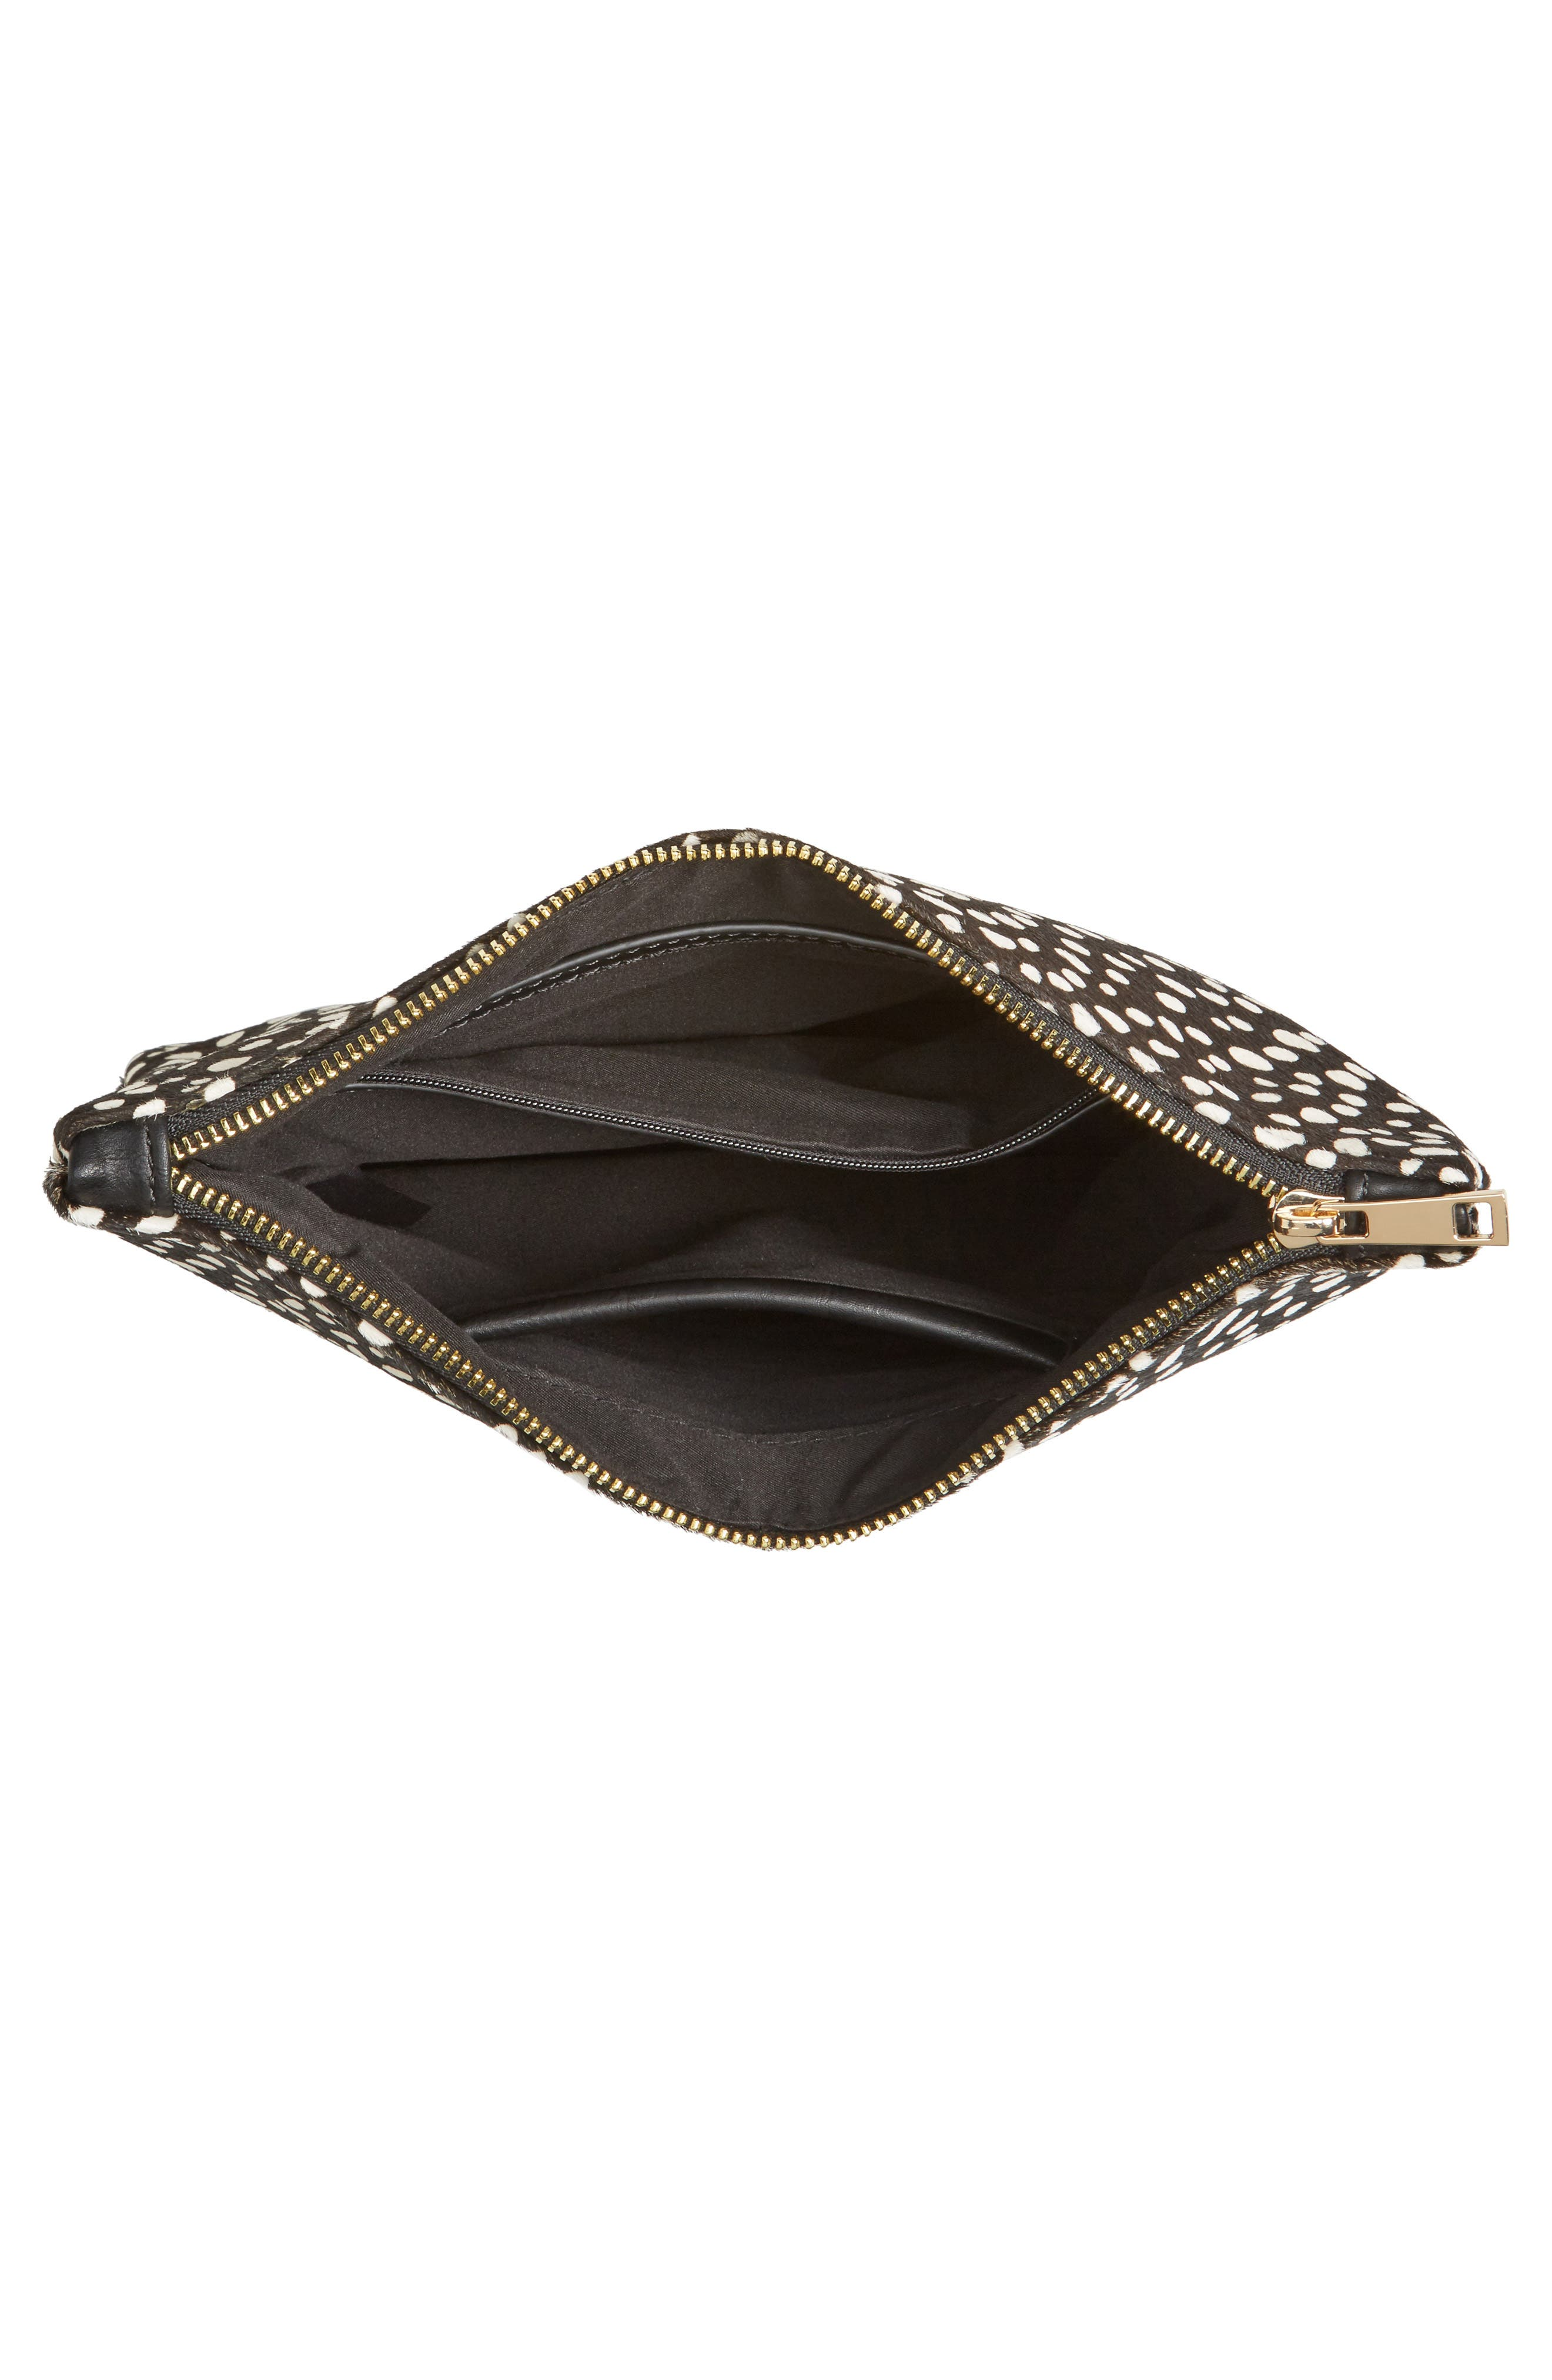 'Dolce' Genuine Calf Hair Clutch,                             Alternate thumbnail 4, color,                             001